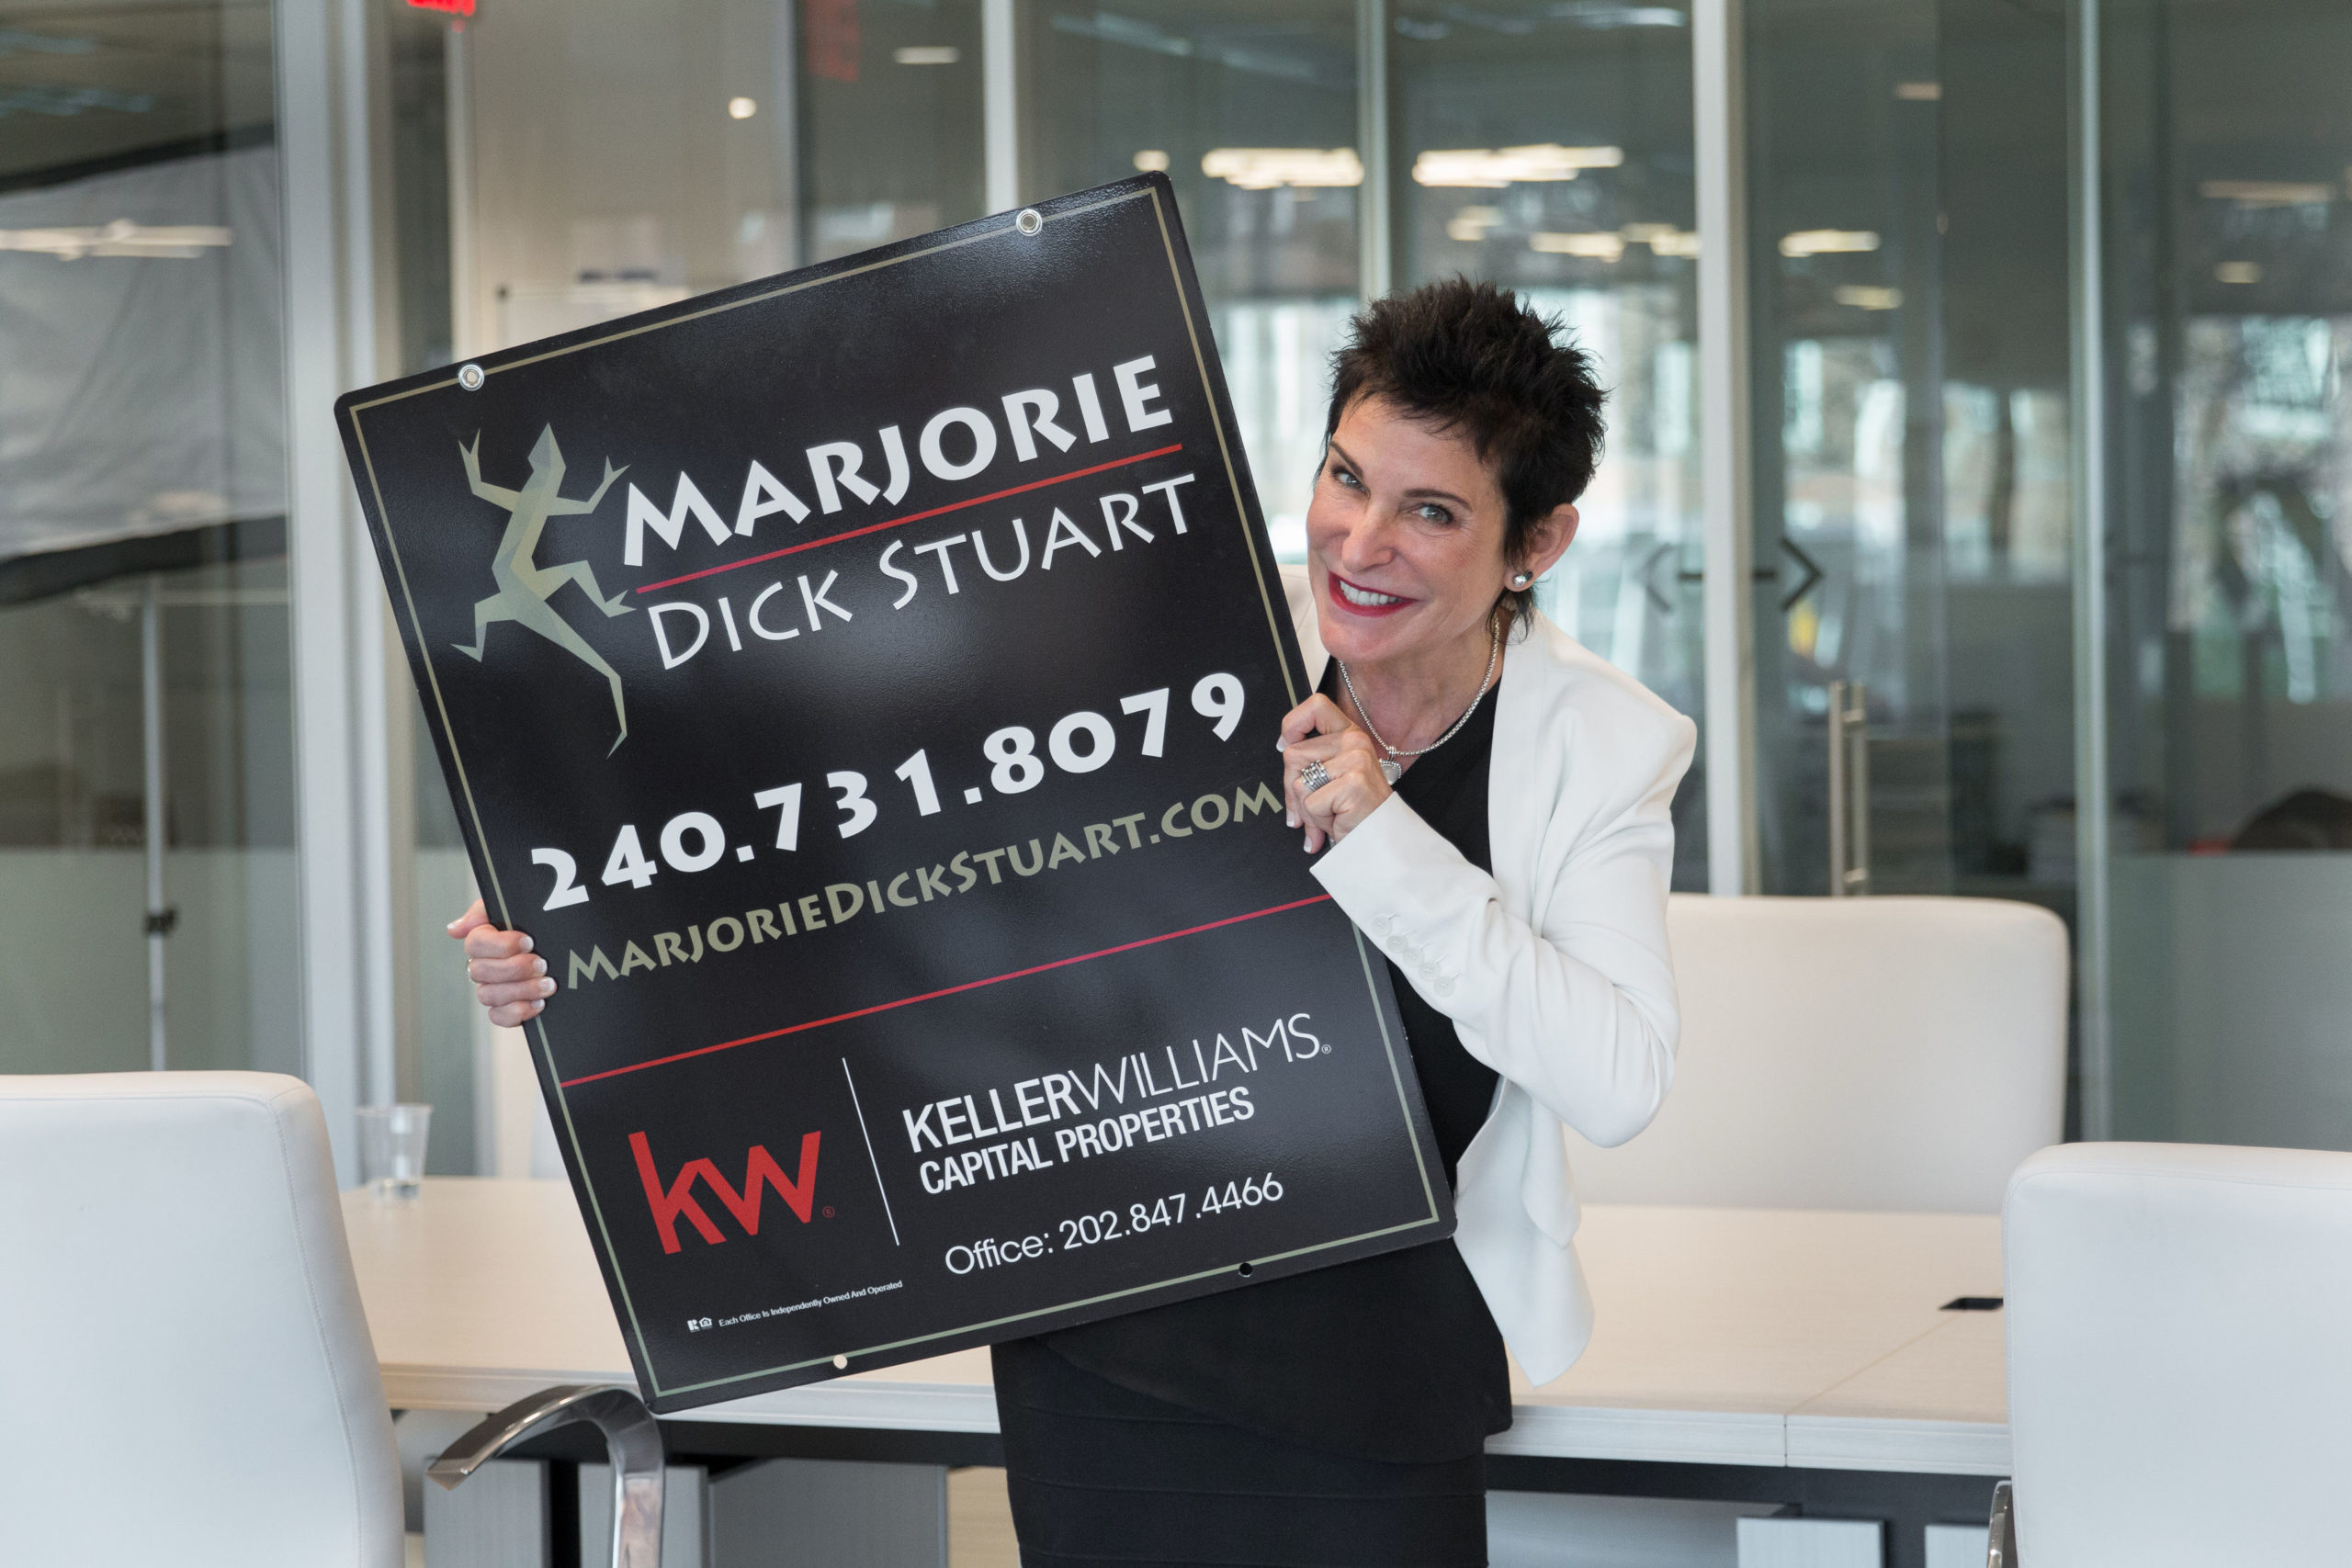 Marjorie Dick Stuart: Let Your Life Be Your Brand